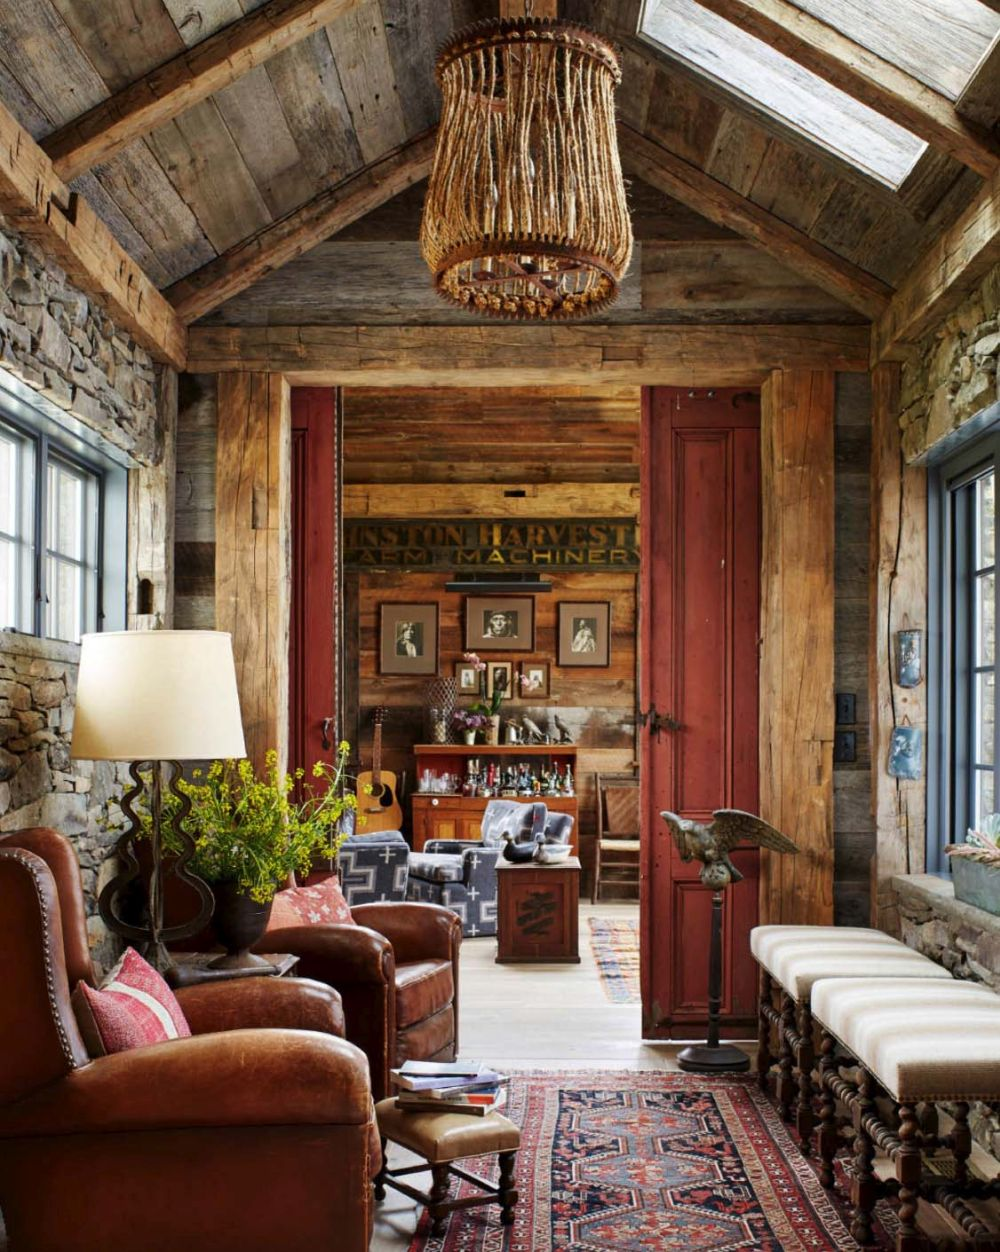 The palette of materials, colors and textures is based around natural elements, with a strong earthy vibe